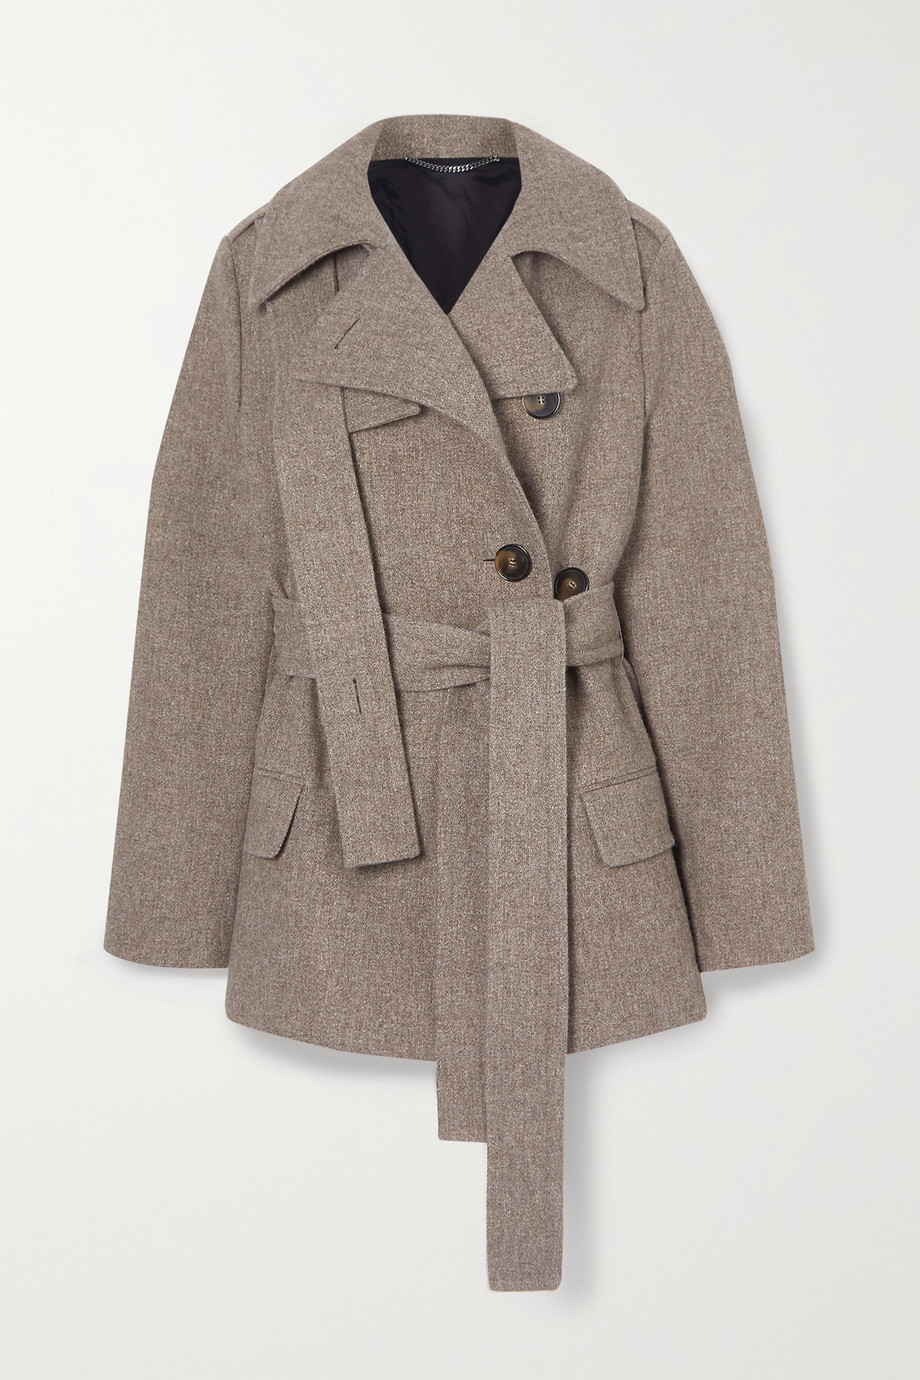 Stella McCartney Belted wool and linen-blend coat